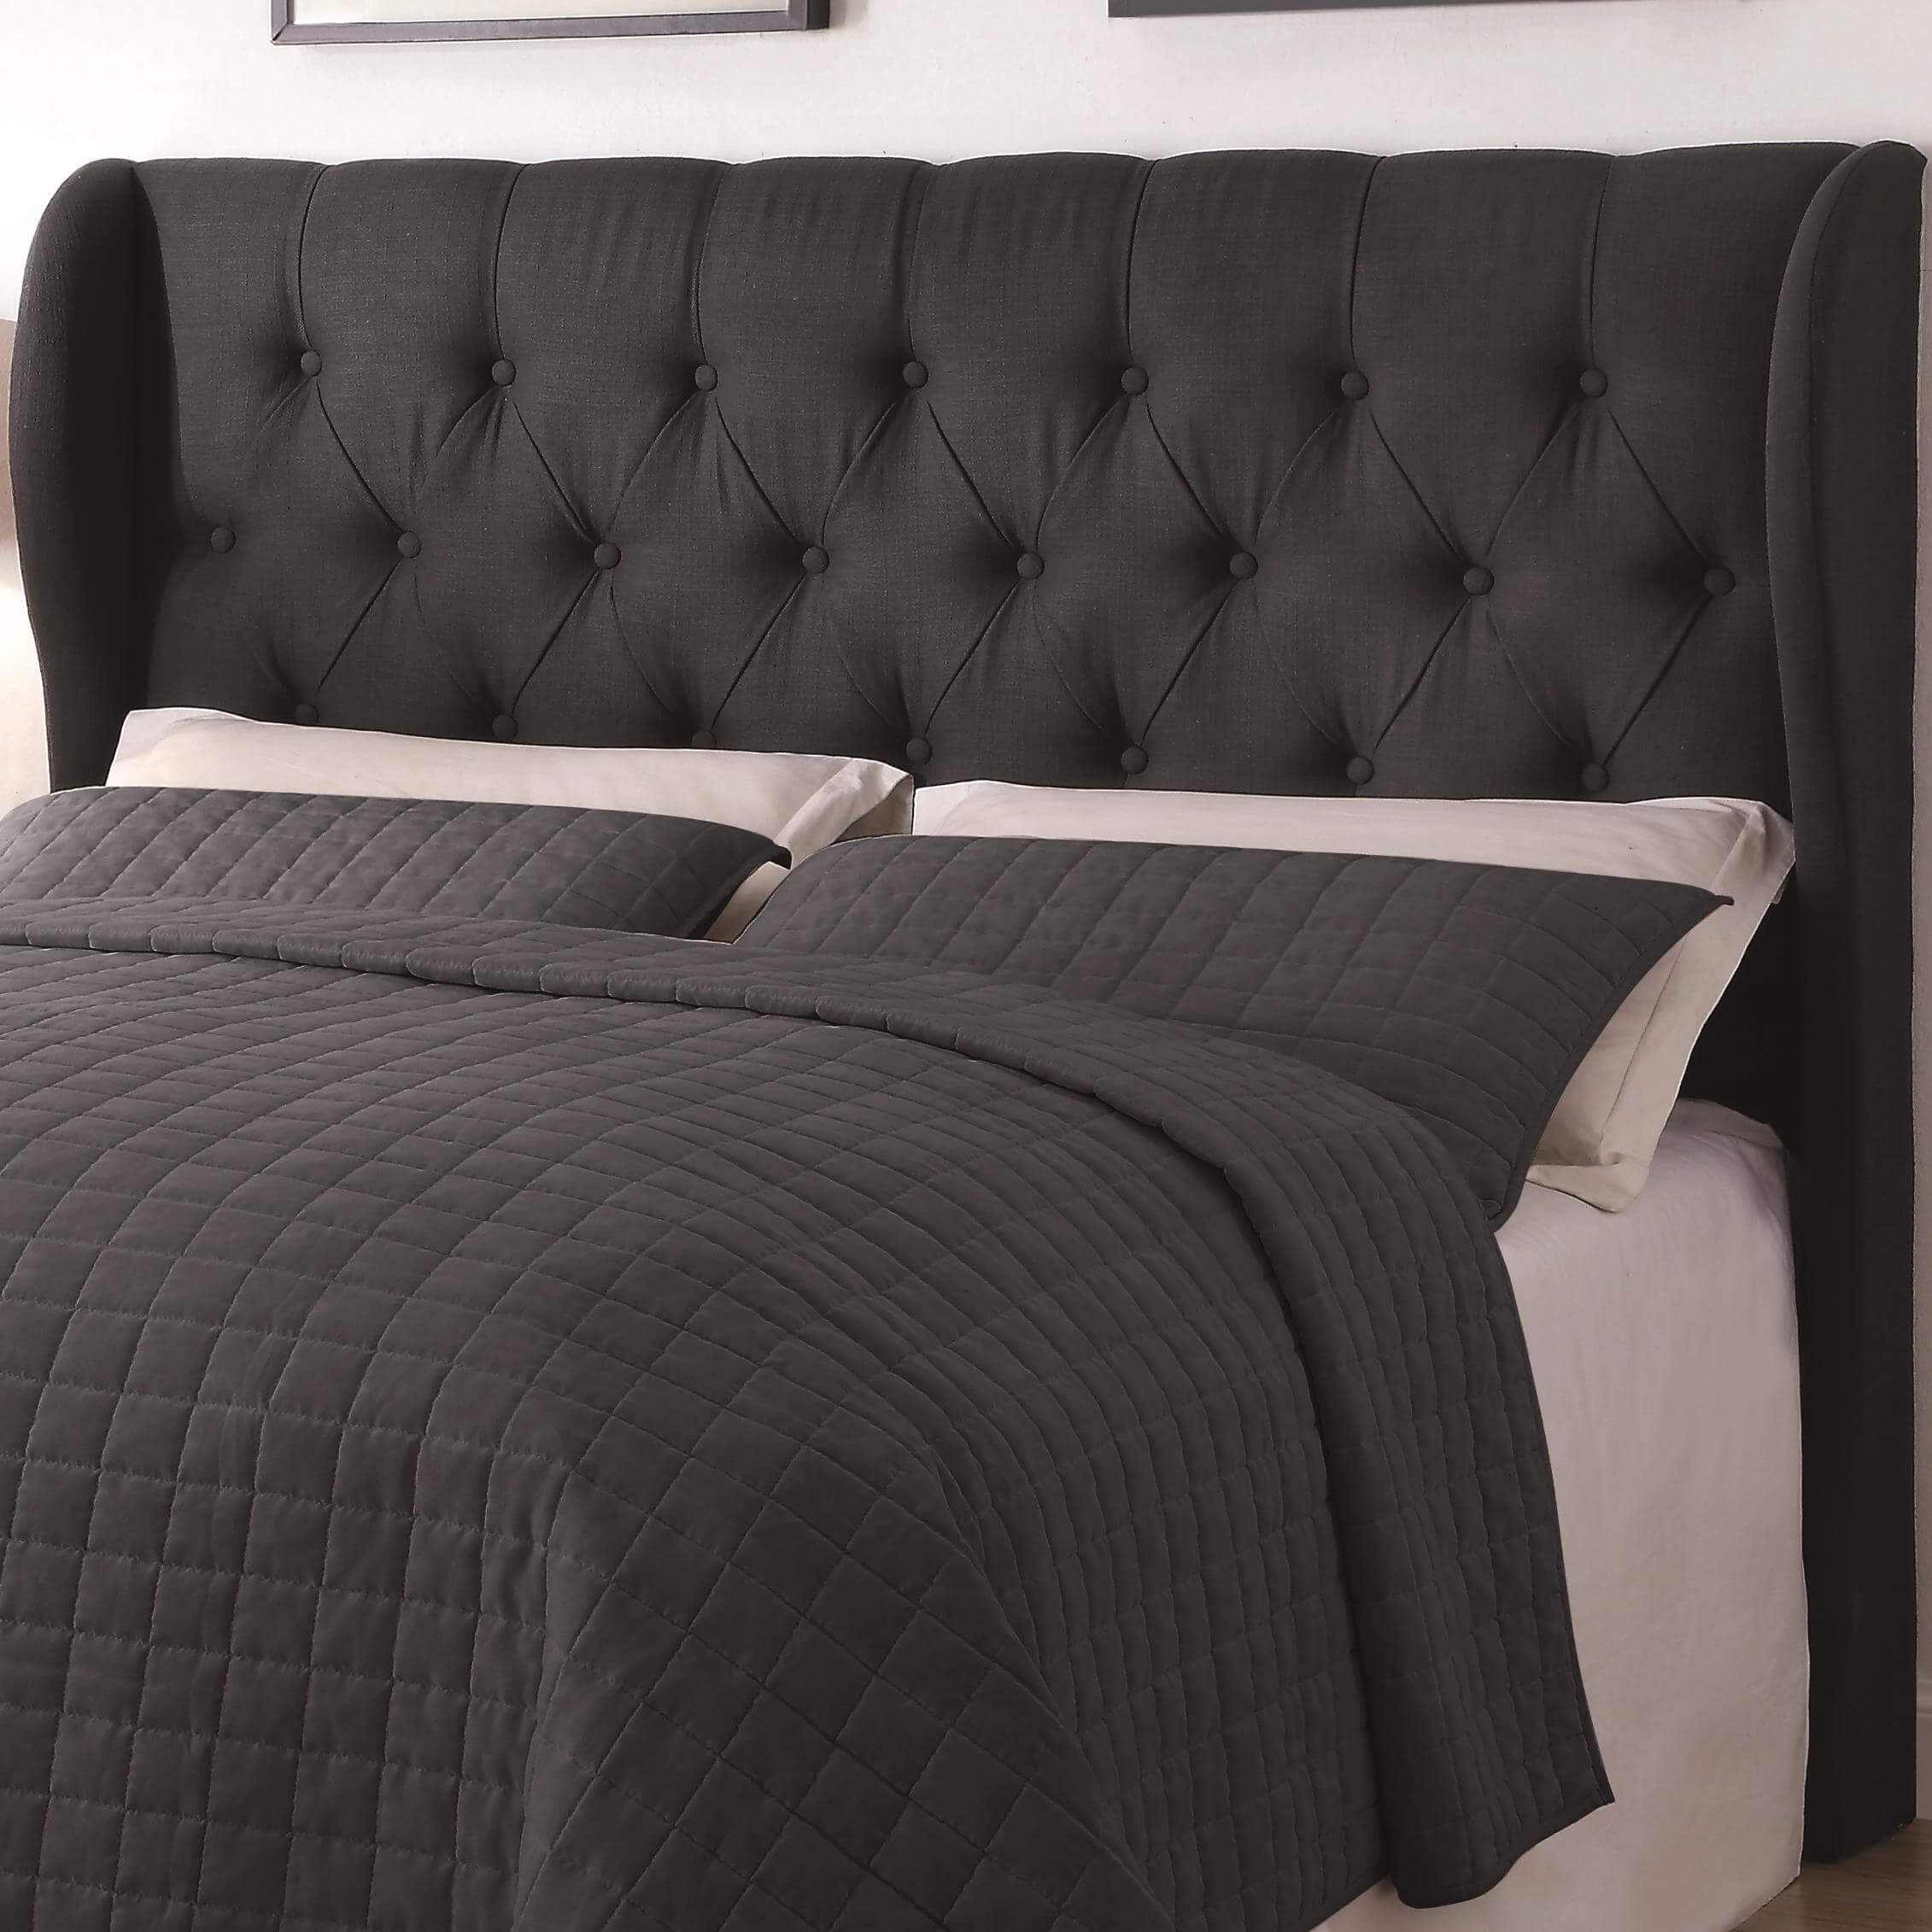 Black Button Tuft Headboard Queen Or Full All American